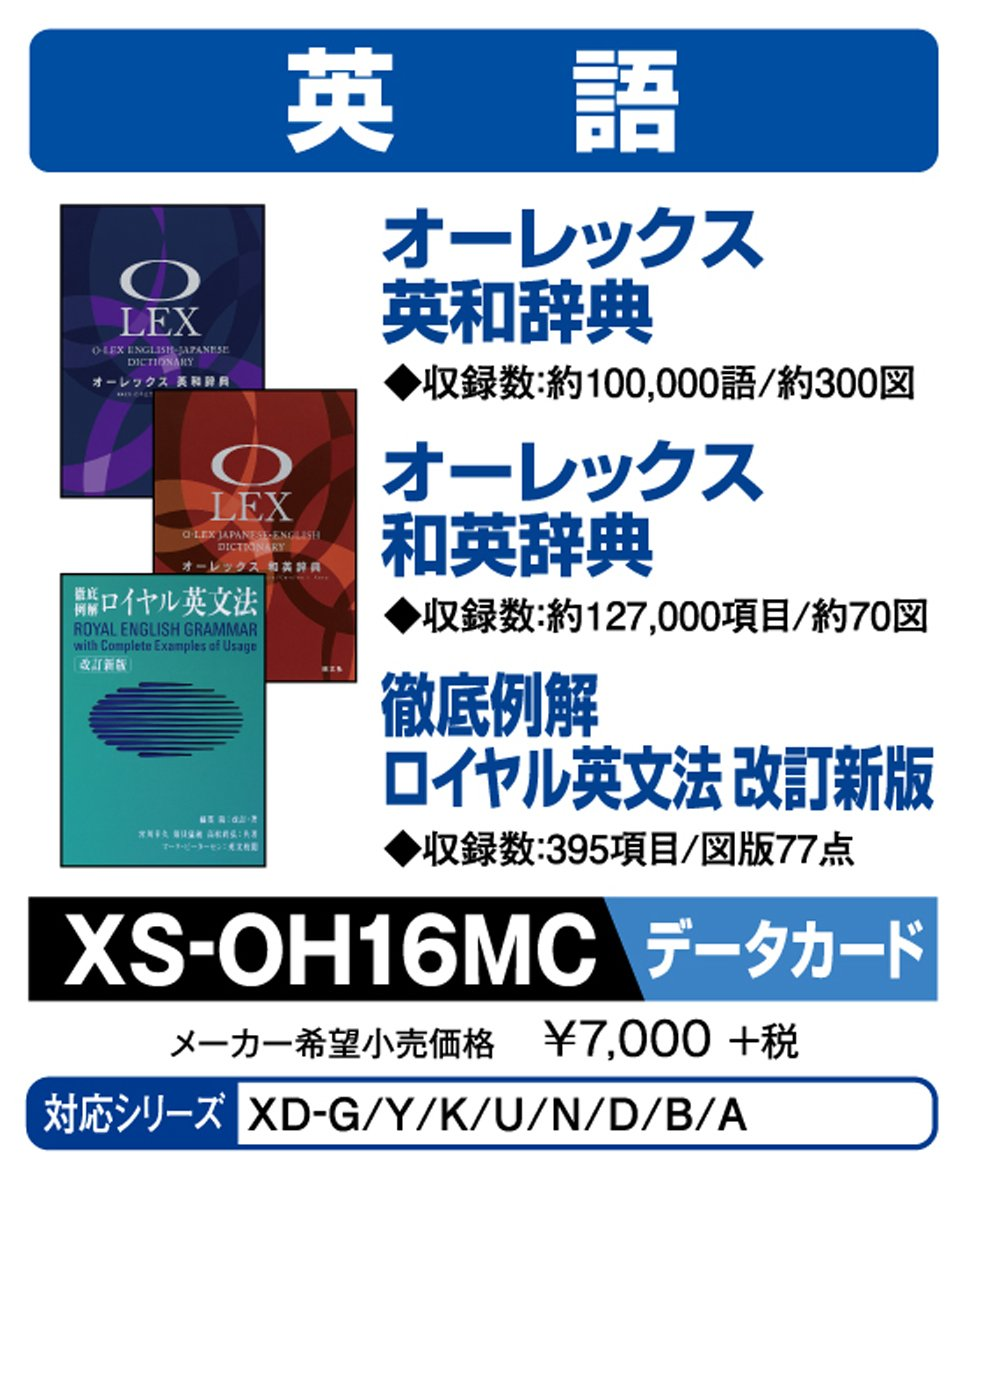 Casio electronic dictionary add content microSD card version Aurex English-Japanese dictionary Japanese-English dictionary Royal English grammar XS-OH16MC